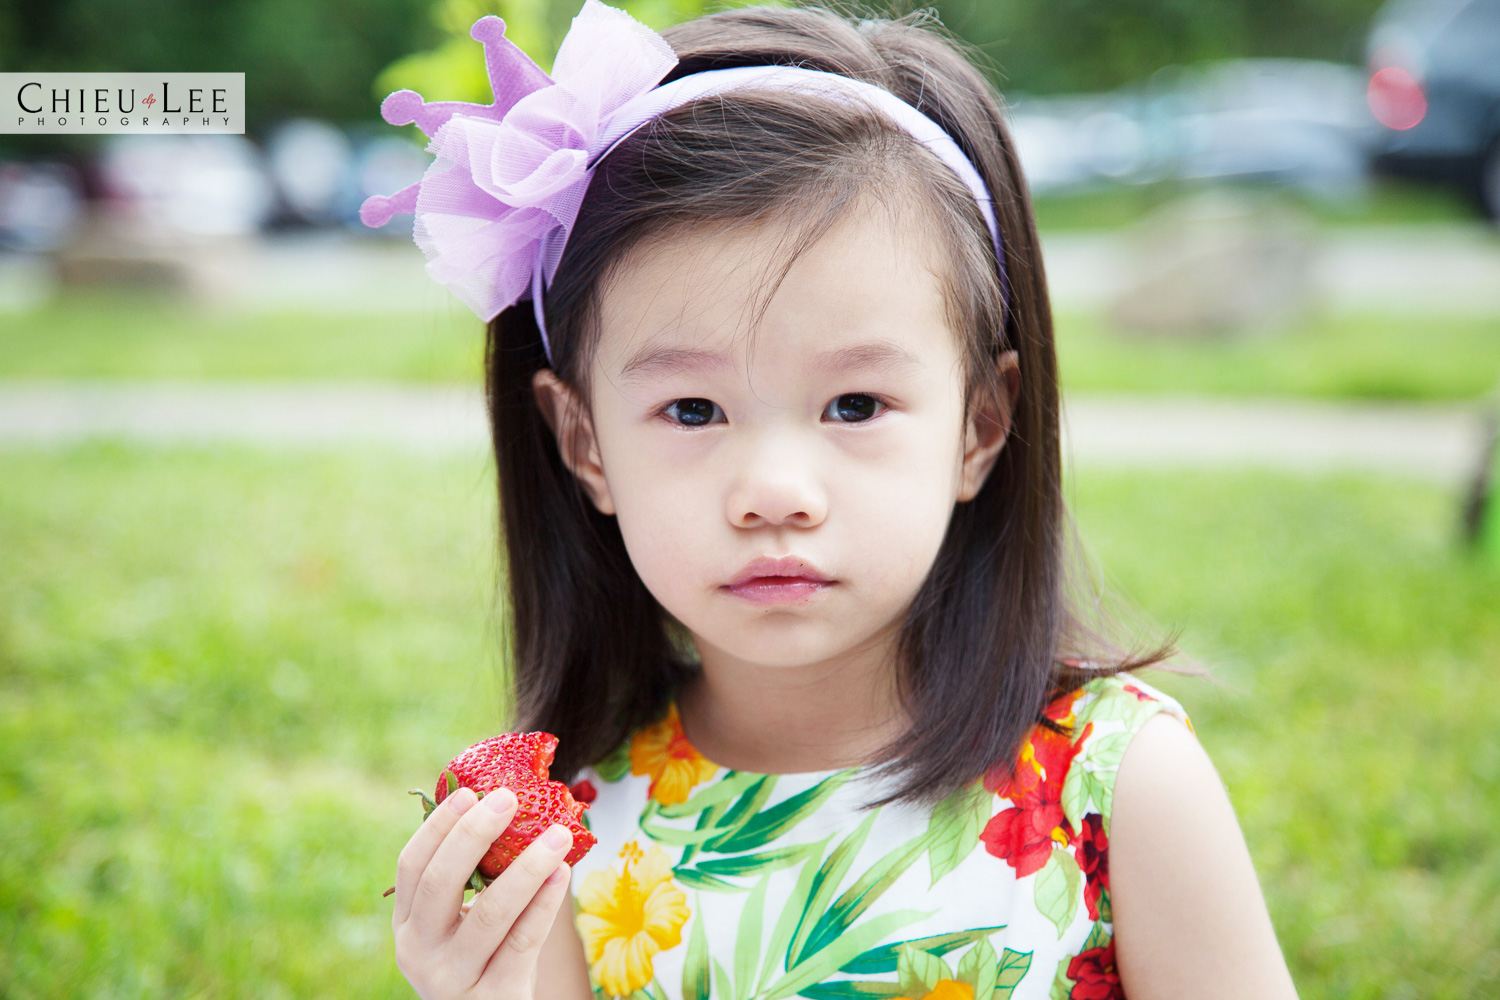 Chieu Lee Children Portraits